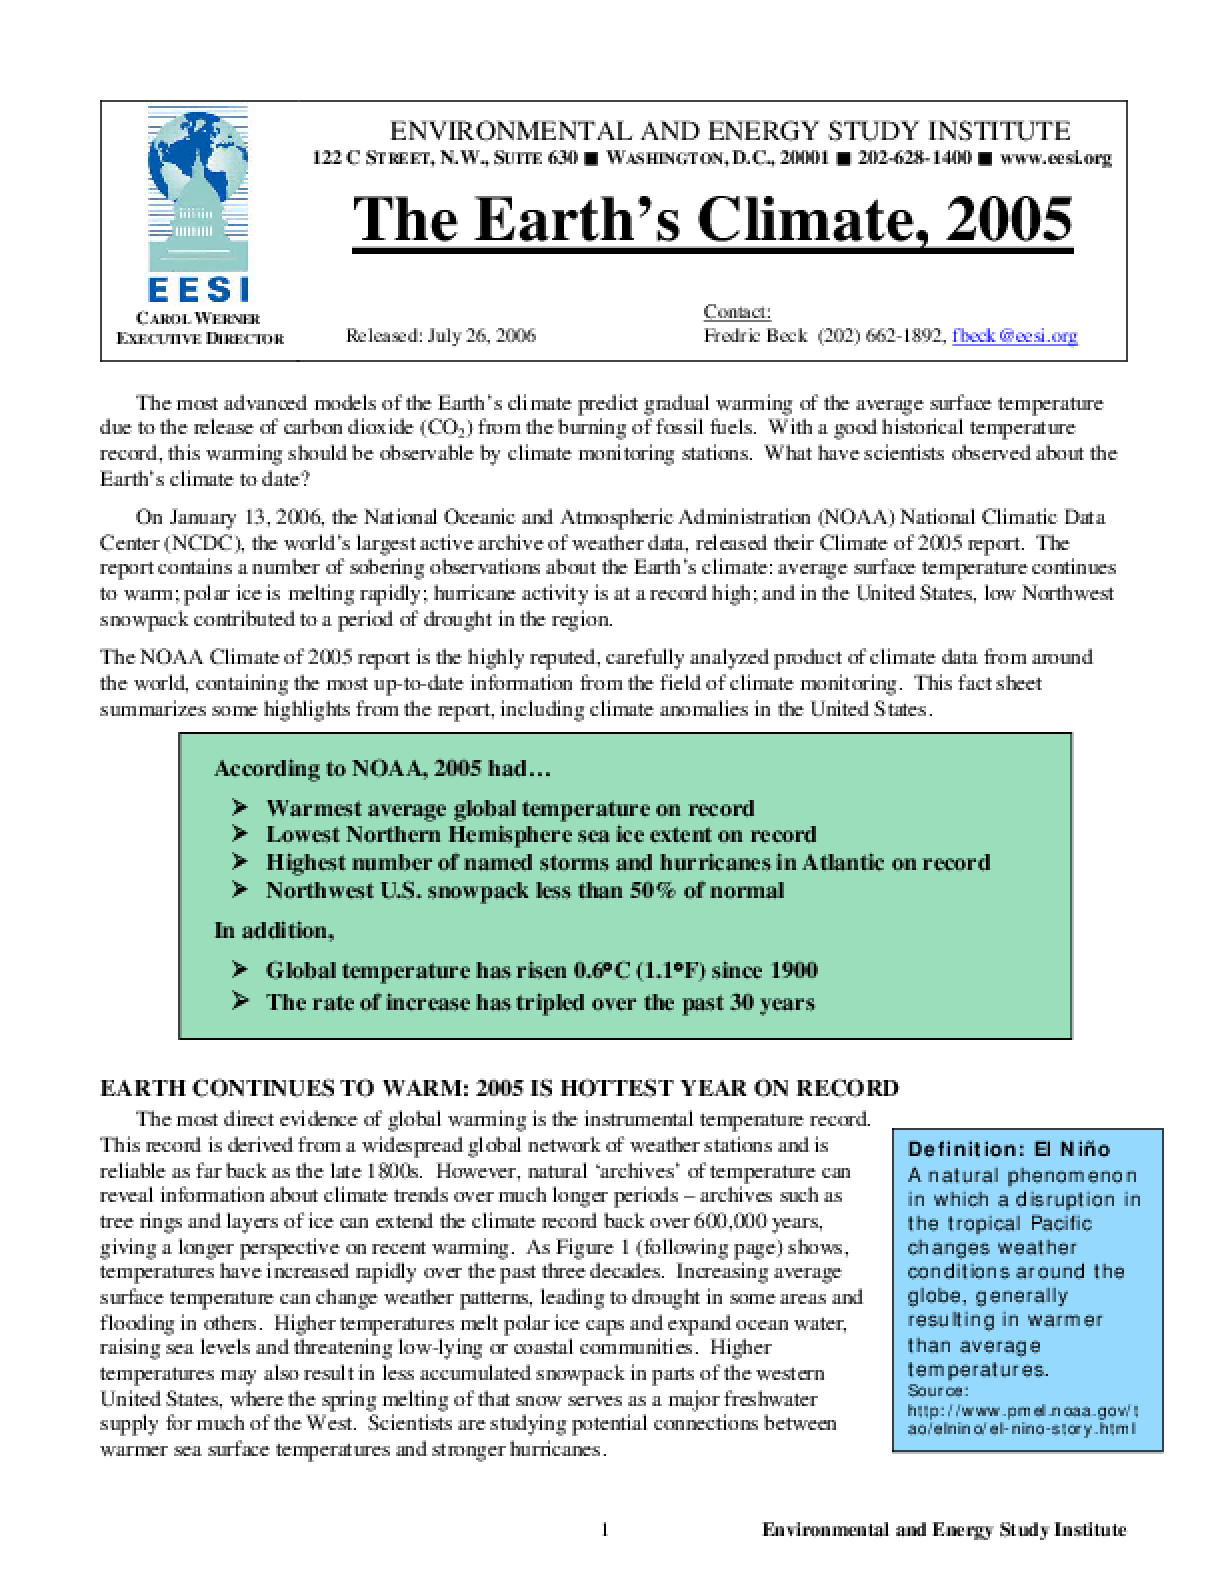 The Earth's Climate, 2005